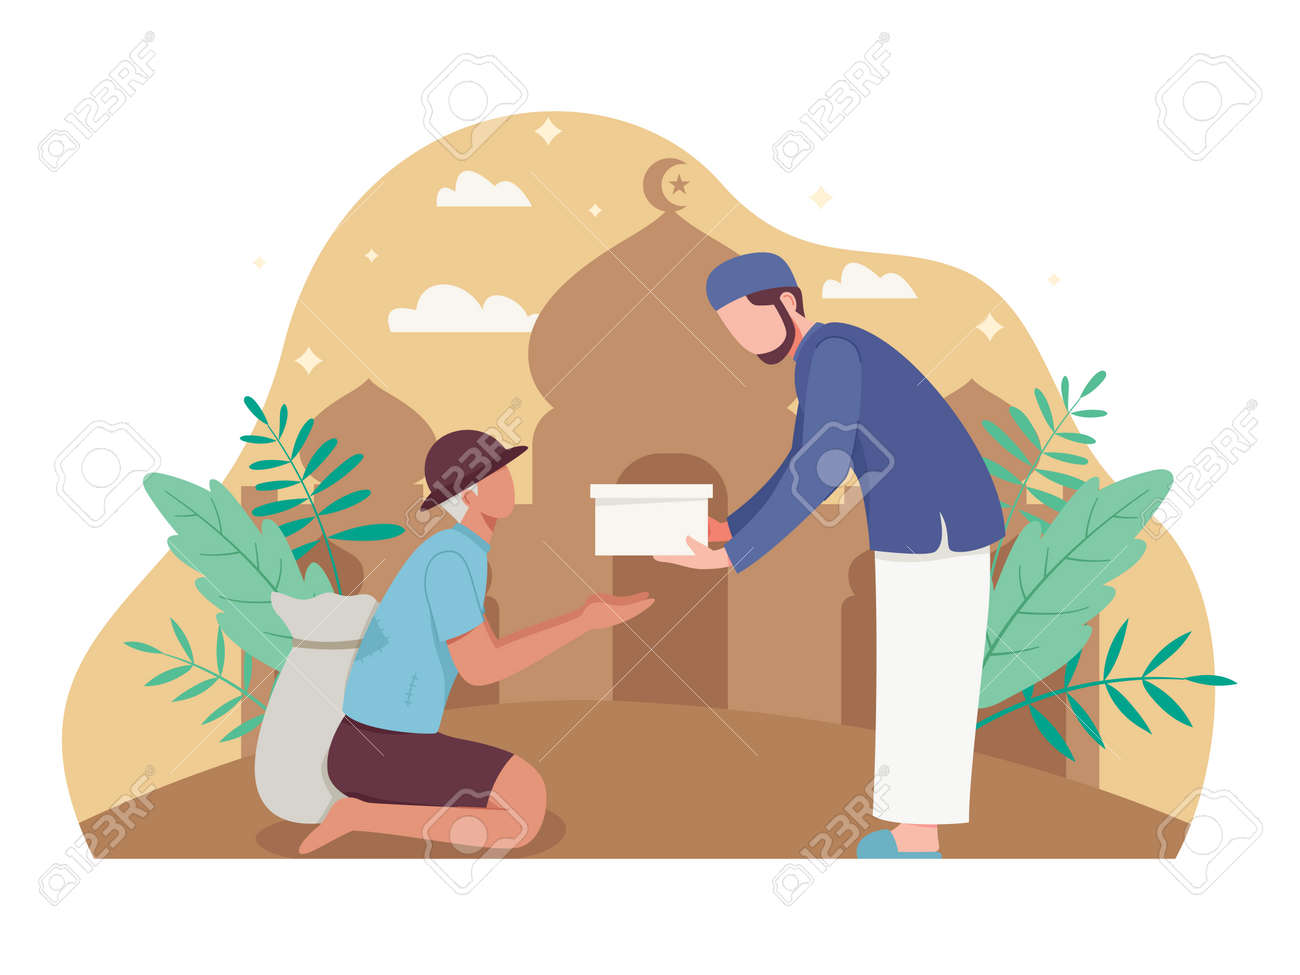 Man giving alms or zakat in the holy month of Ramadan. Muslim giving donation to a poor homeless man. Vector illustration flat style - 168291073